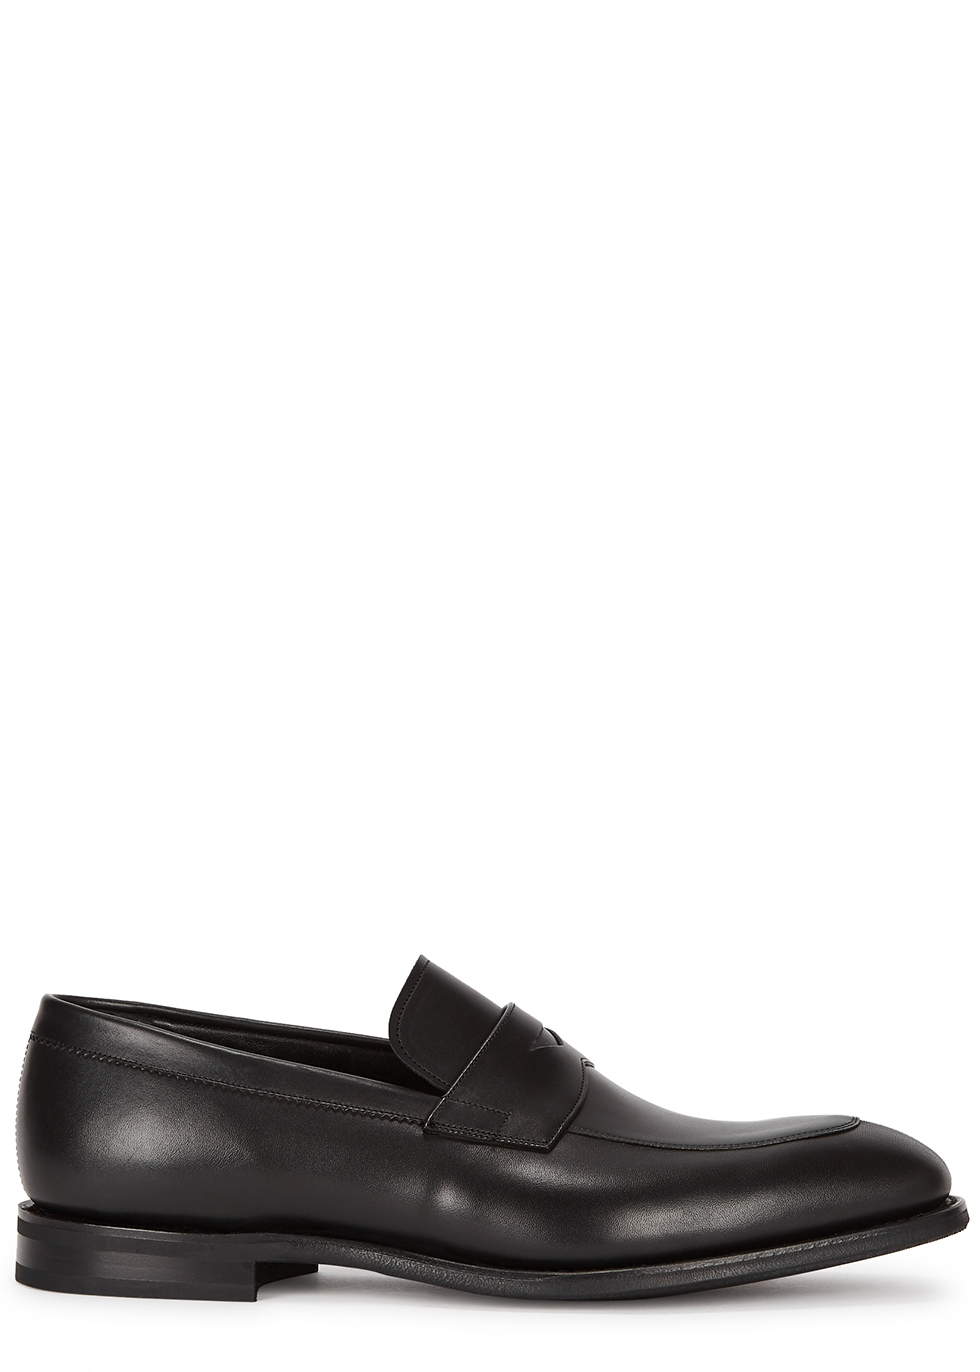 Parham black leather penny loafers